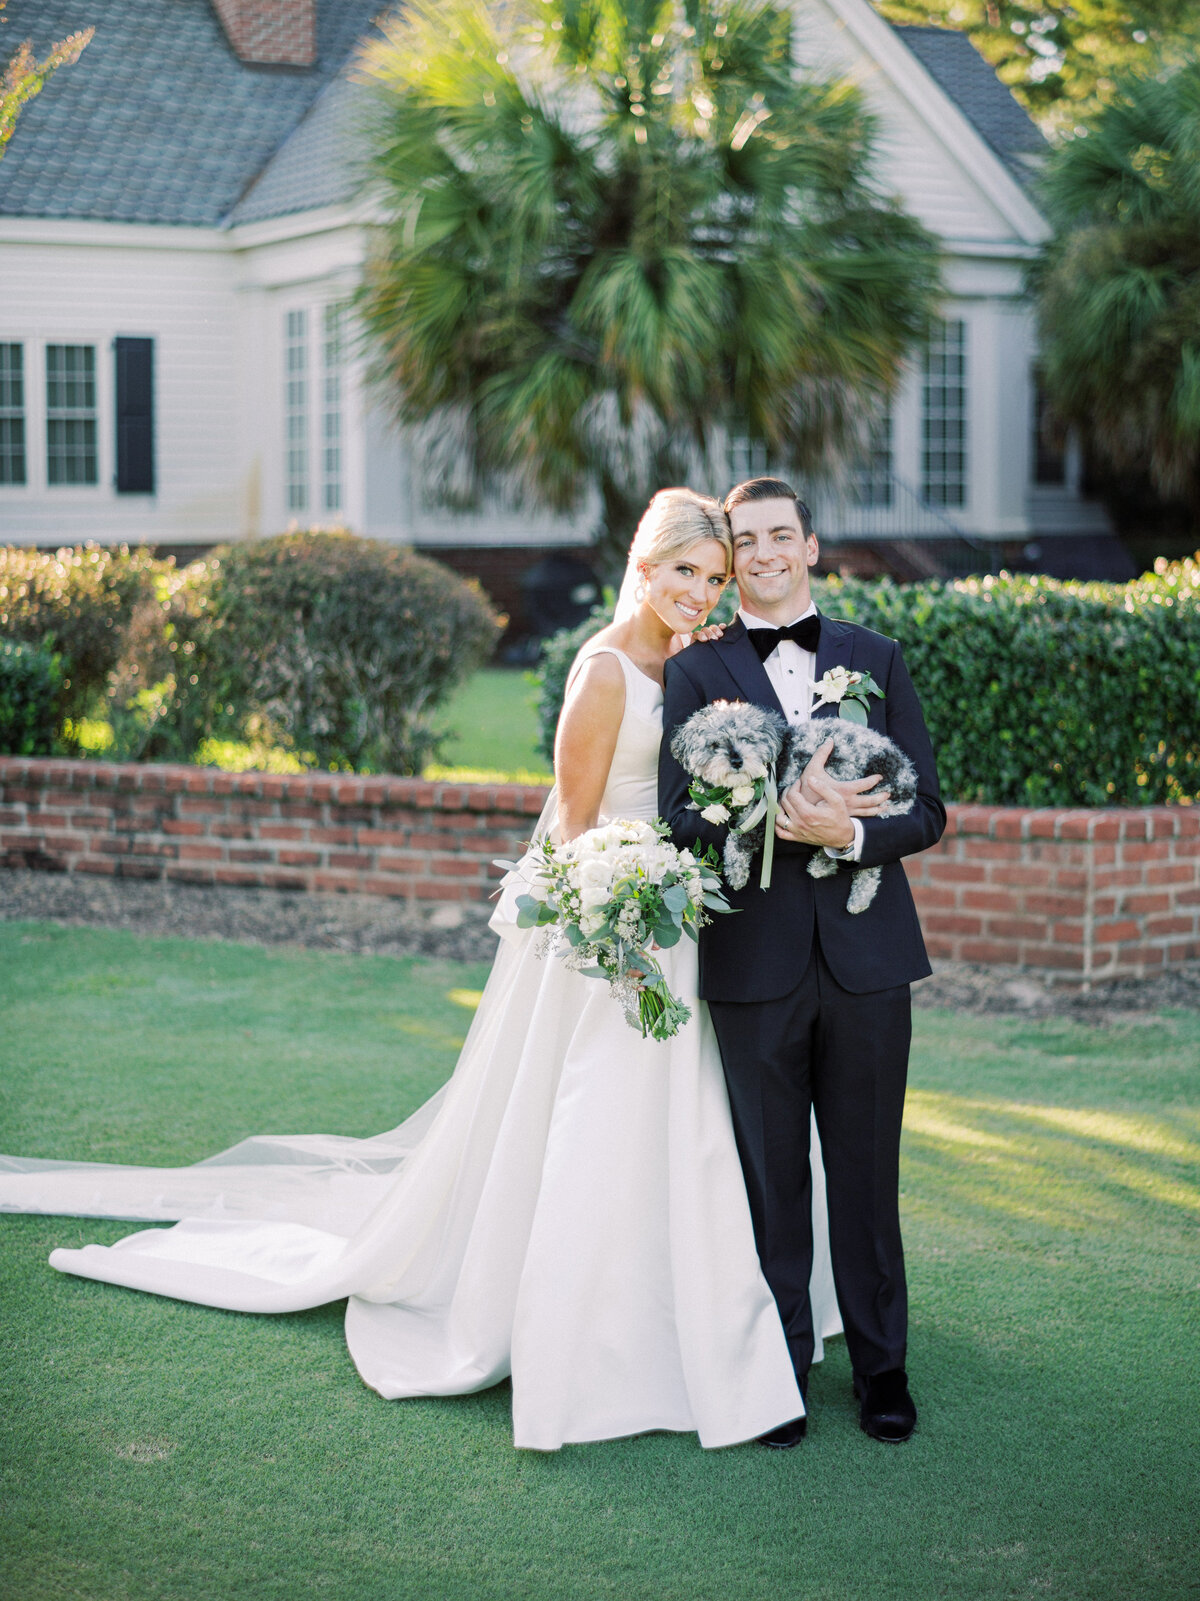 Belfair-Plantation-Bluffton-Hilton-Head-Island-Wedding-Philip-Casey-Photo-55